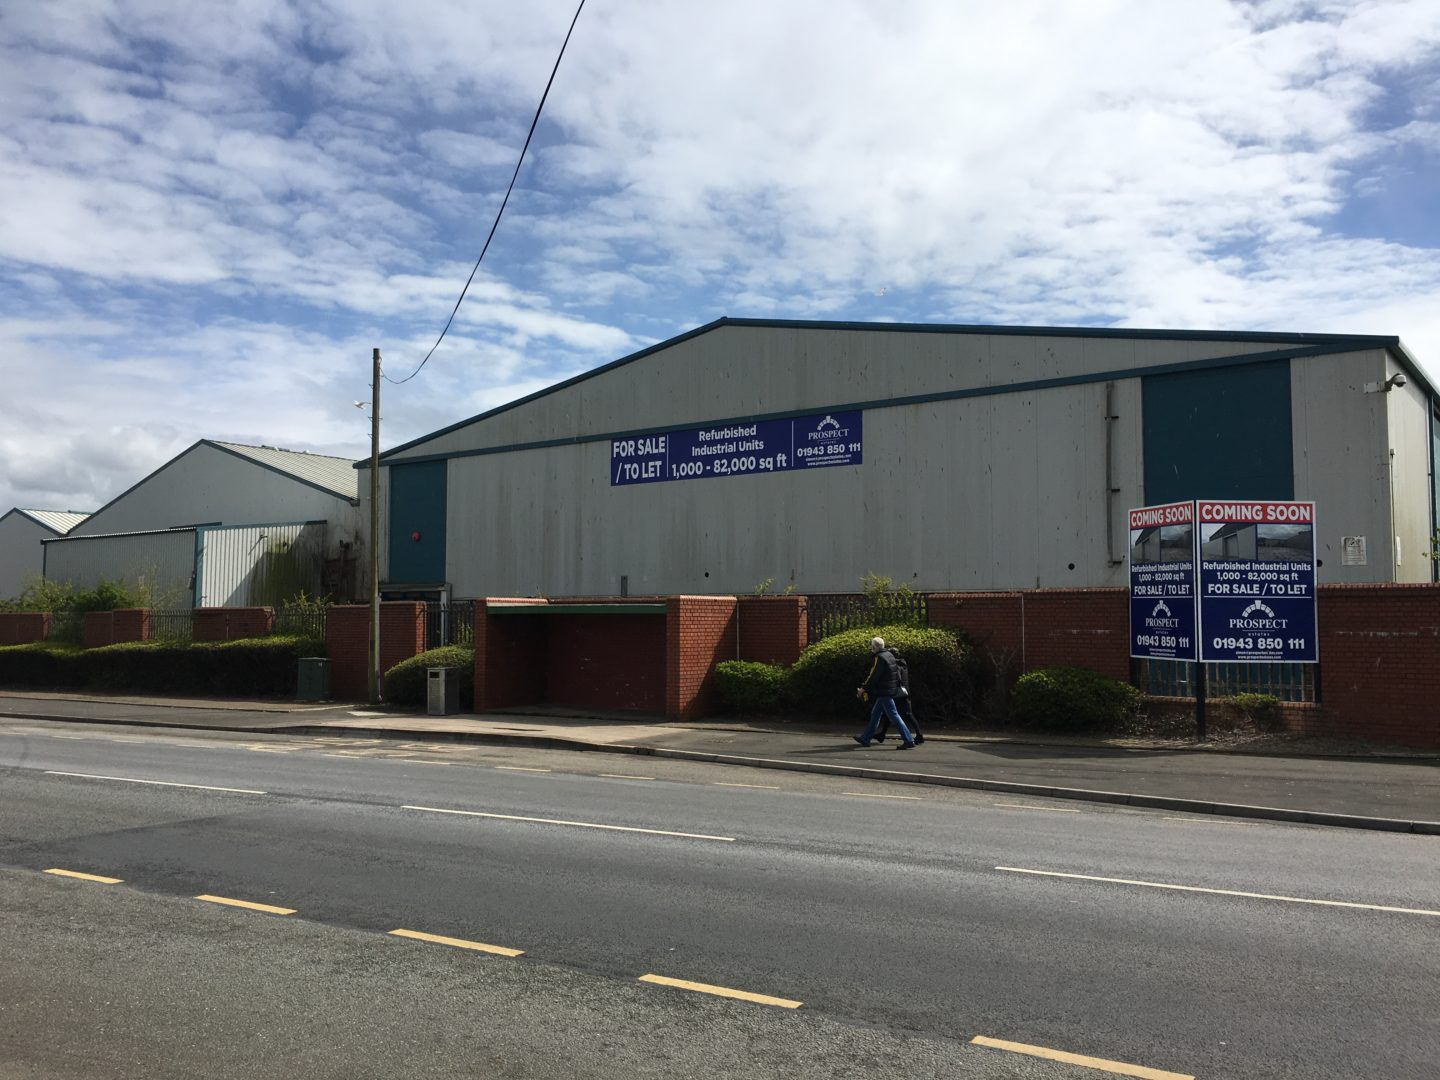 Units at Solway Industrial Estate